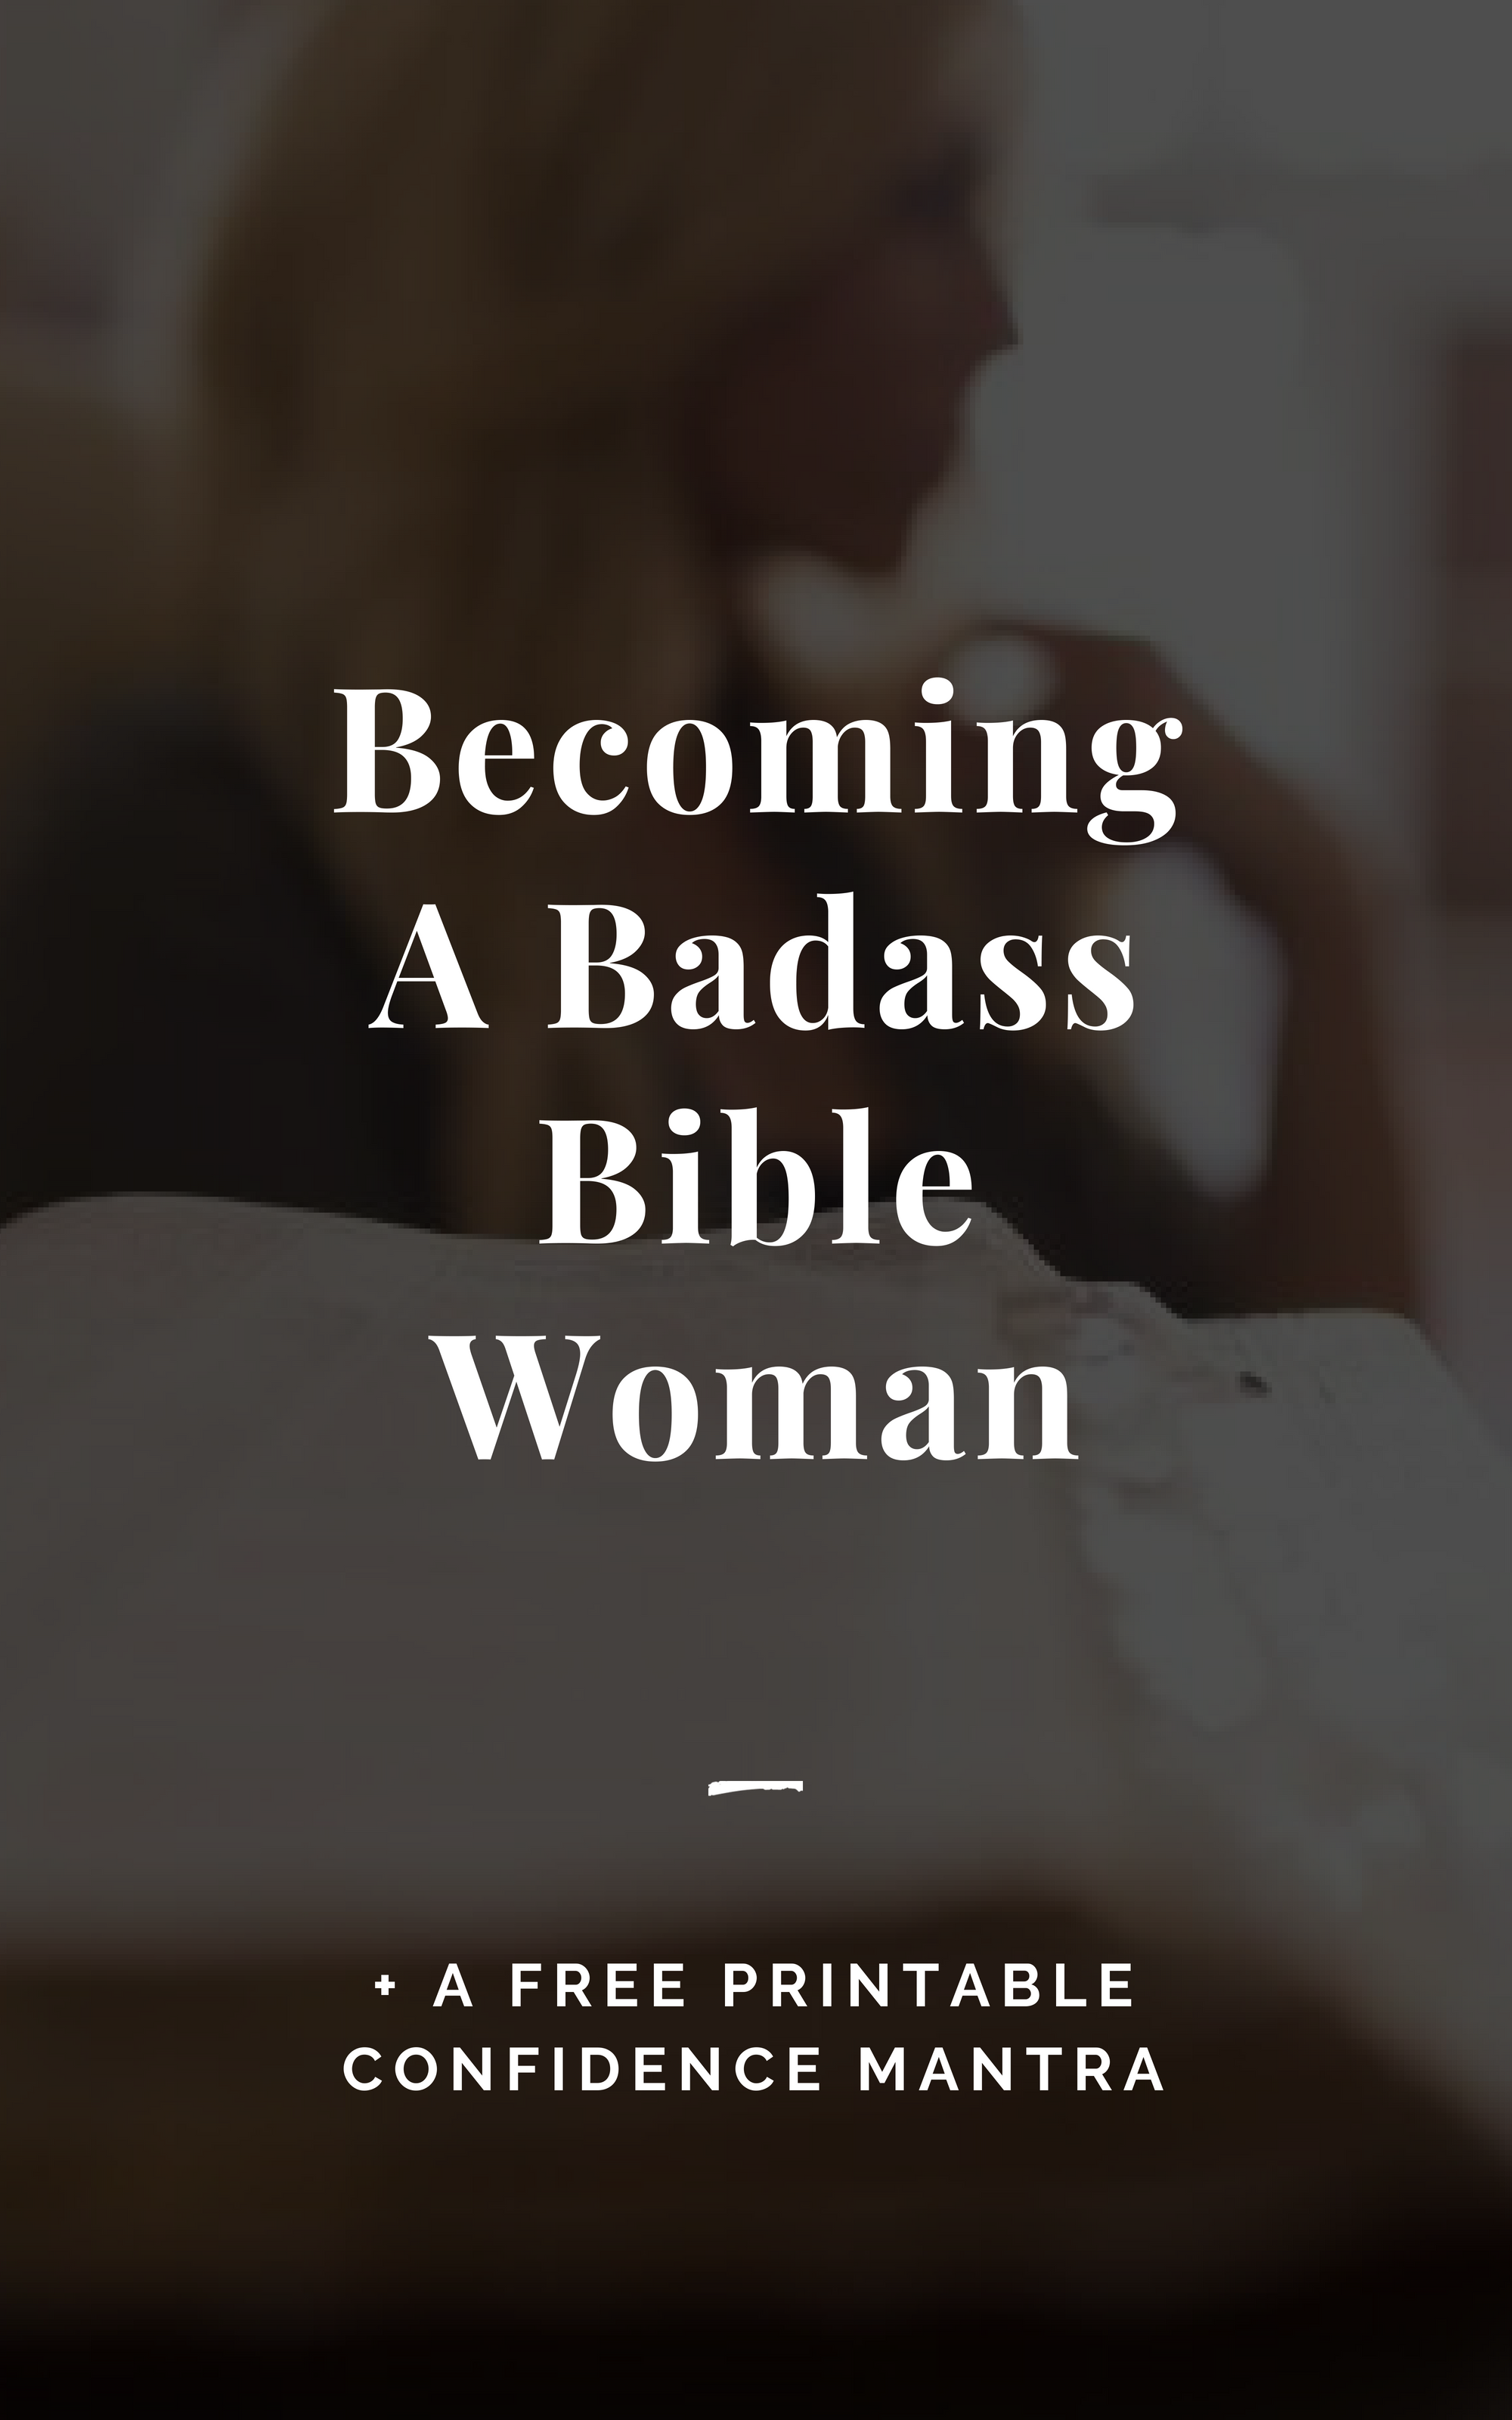 Becoming a badass bible woman